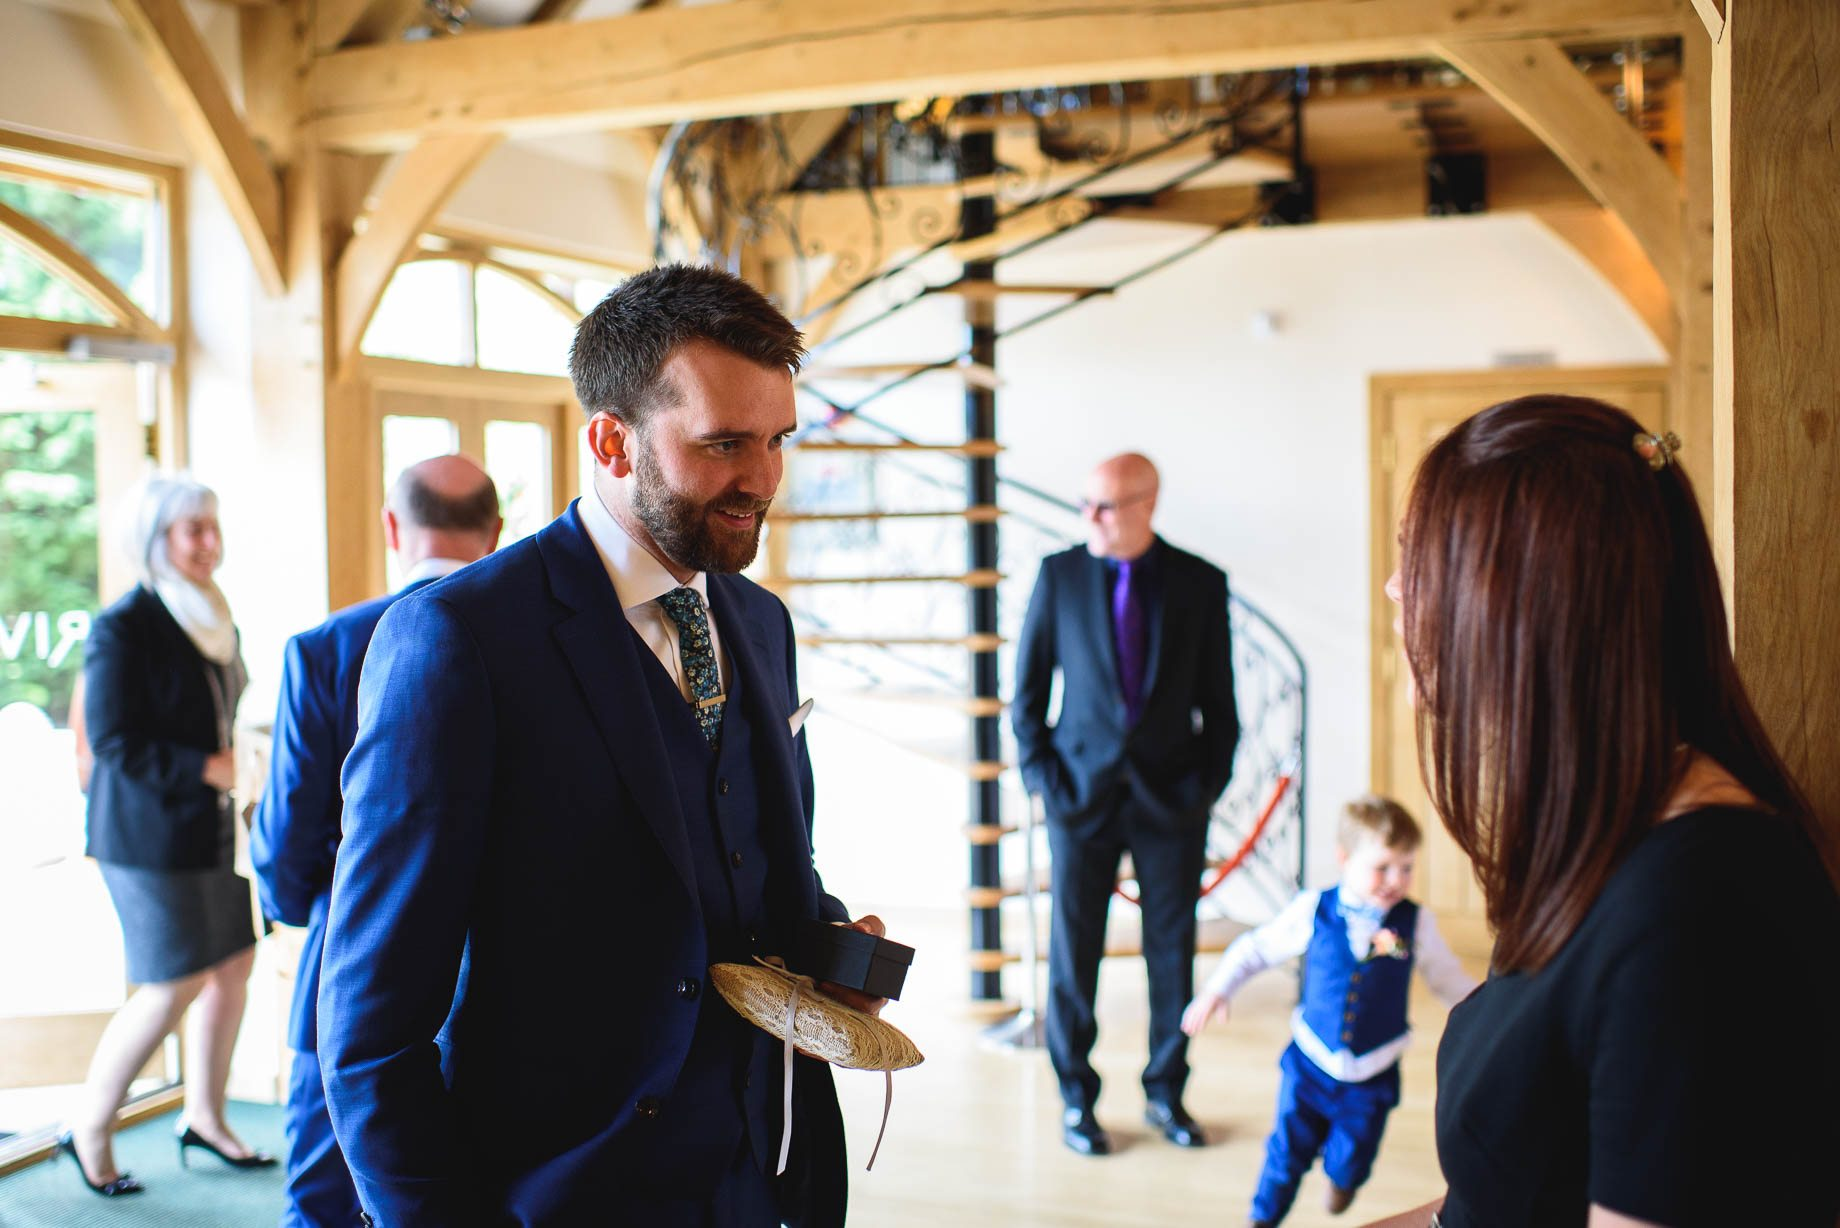 Rivervale Barn wedding photography by Guy Collier - Claire and Simon (27 of 133)